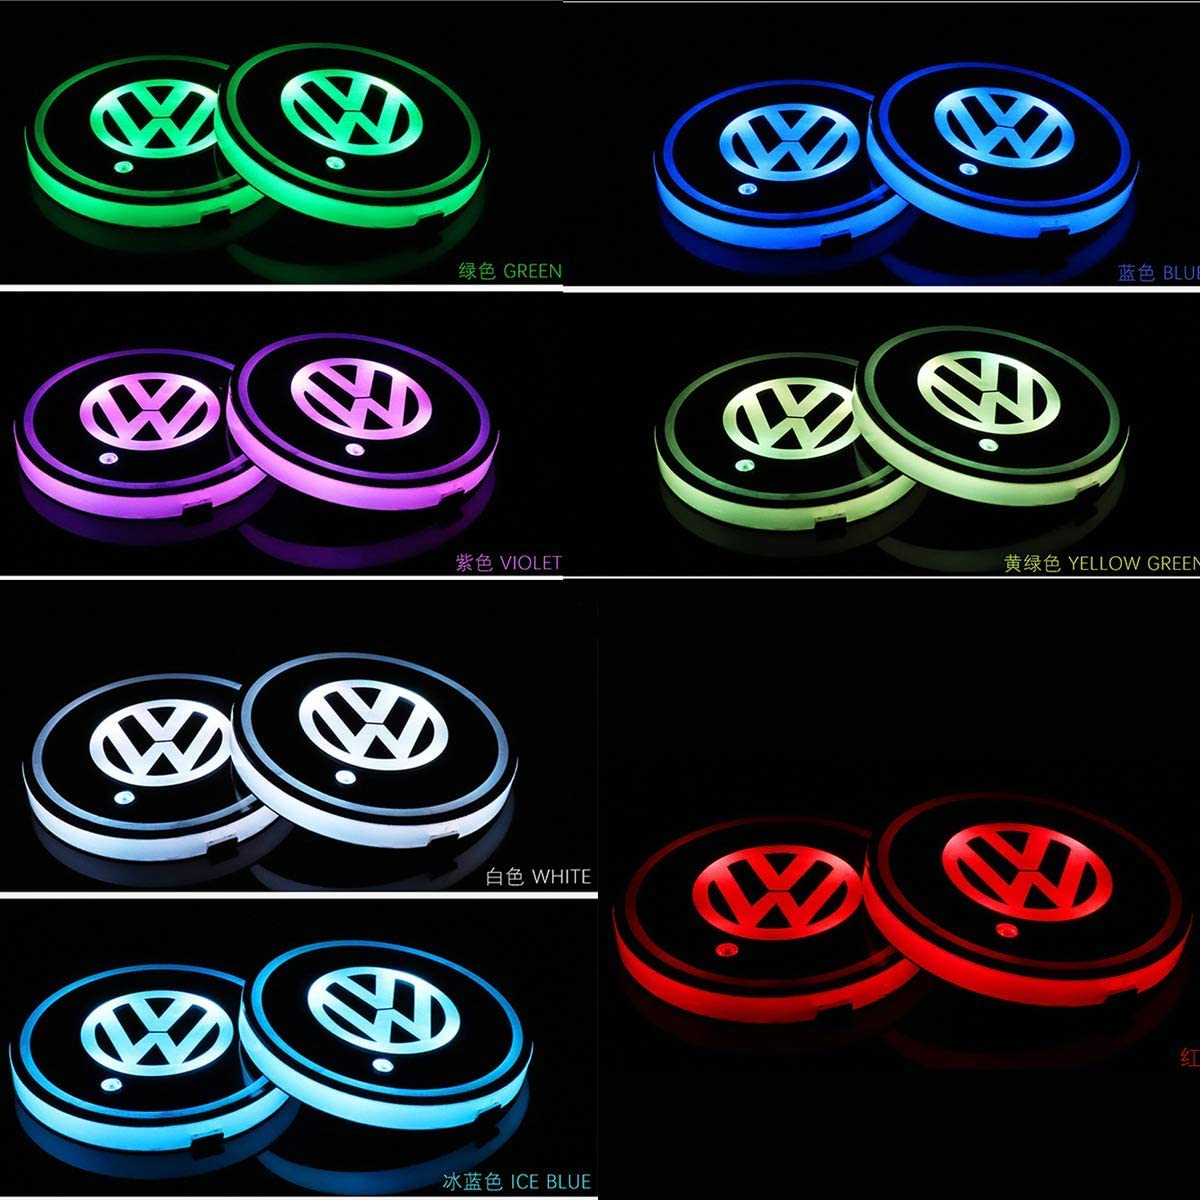 LED Interior Atmosphere Lamp,17 Colors Changing,USB Charging Mat Luminescent Cup Pad Cadillac Honghou Technology 2pcs LED Car Cup Holder Lights for Cadillac